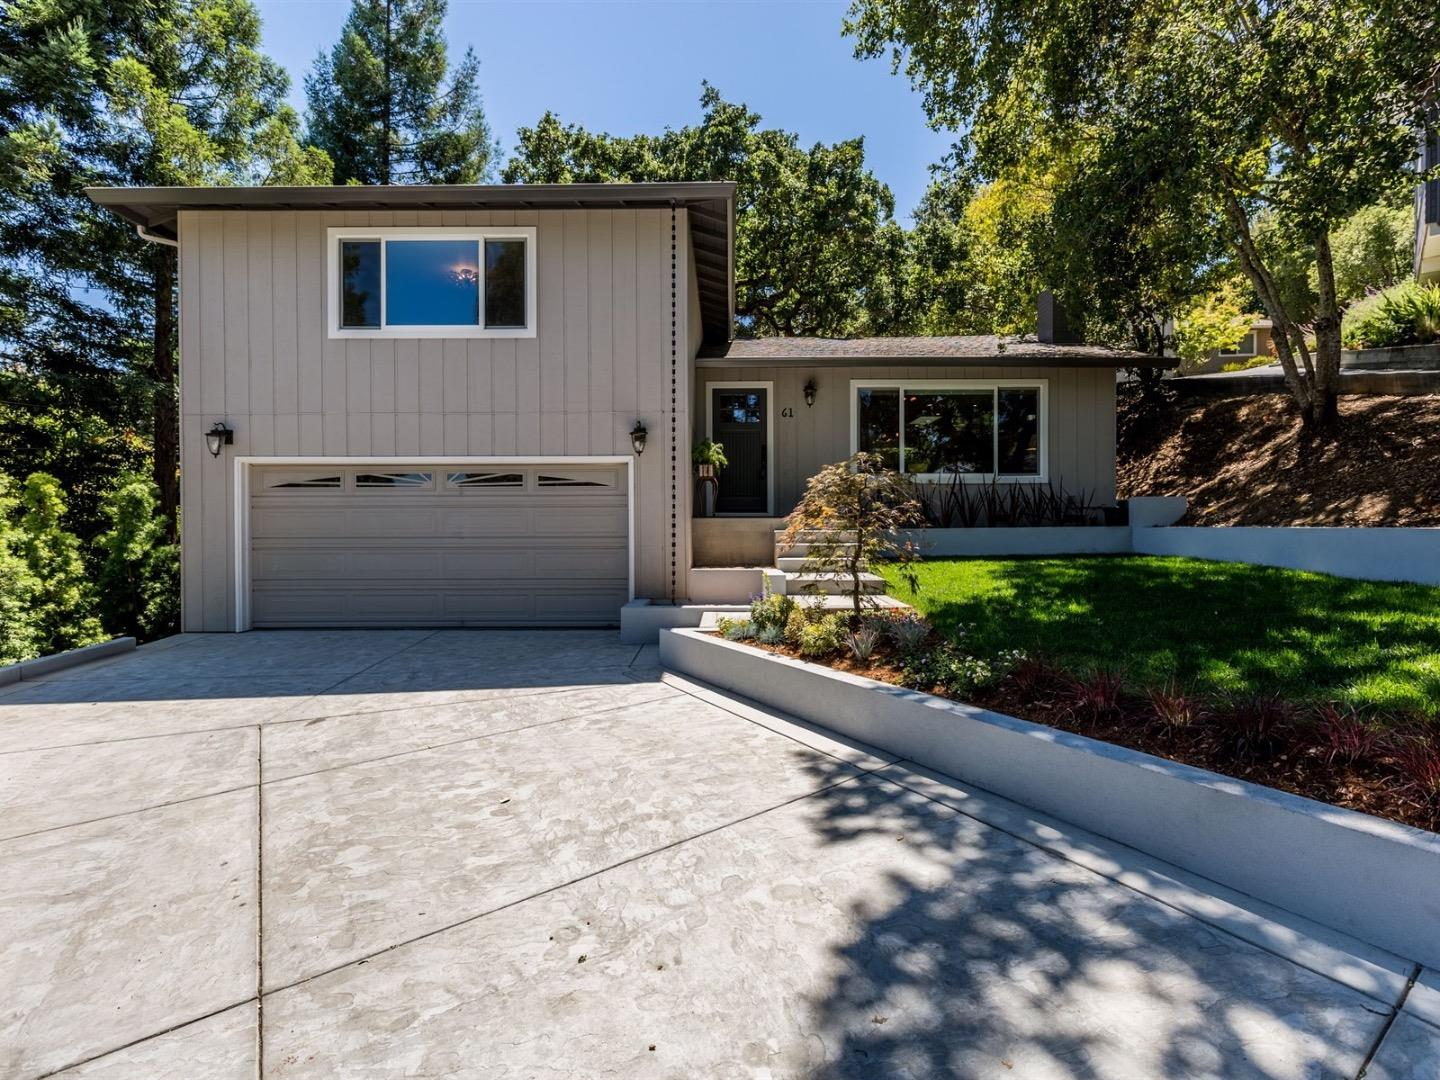 Single Family Home for Sale at 61 Devonshire Circle San Carlos, California 94070 United States